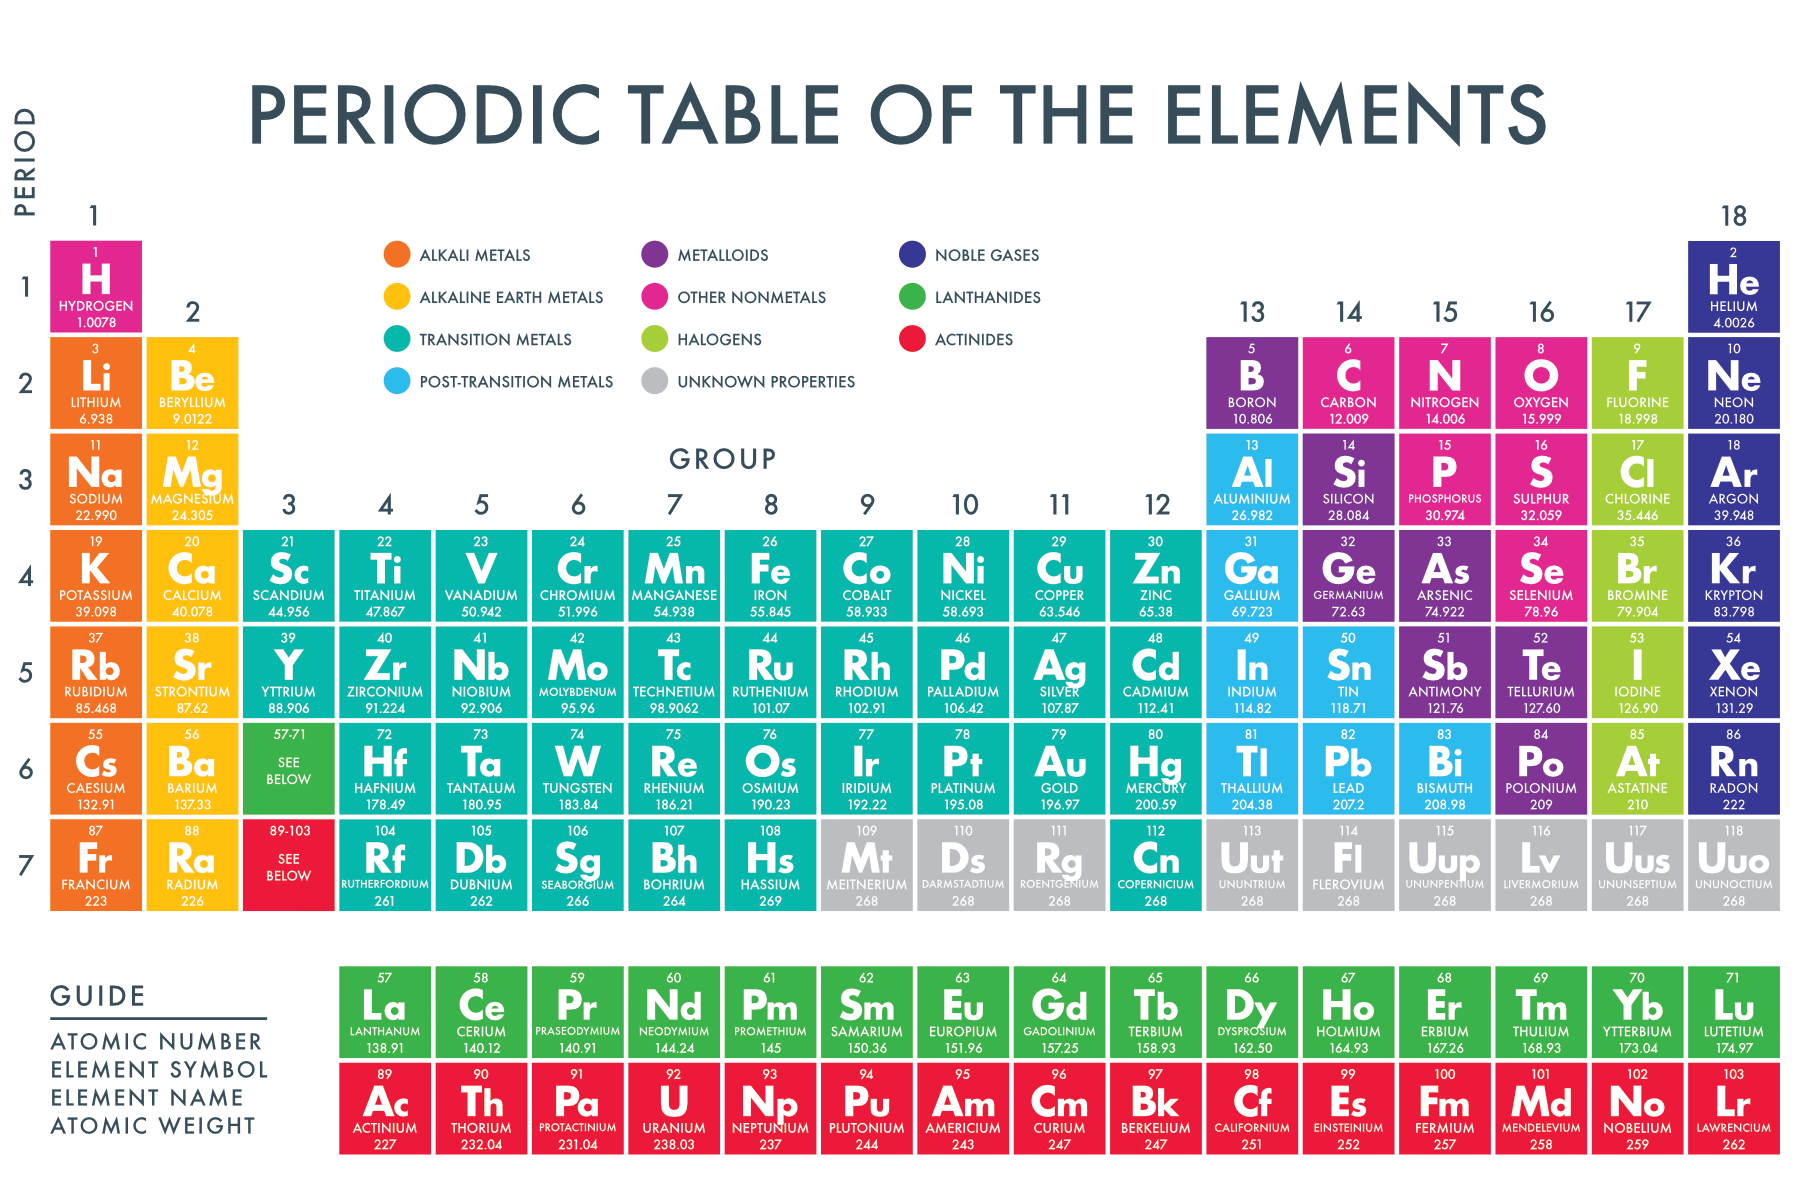 Atomic weight periodic table gallery periodic table images periodic table of the elements paperzip a printable periodic table of the chemical elements displaying the gamestrikefo Gallery